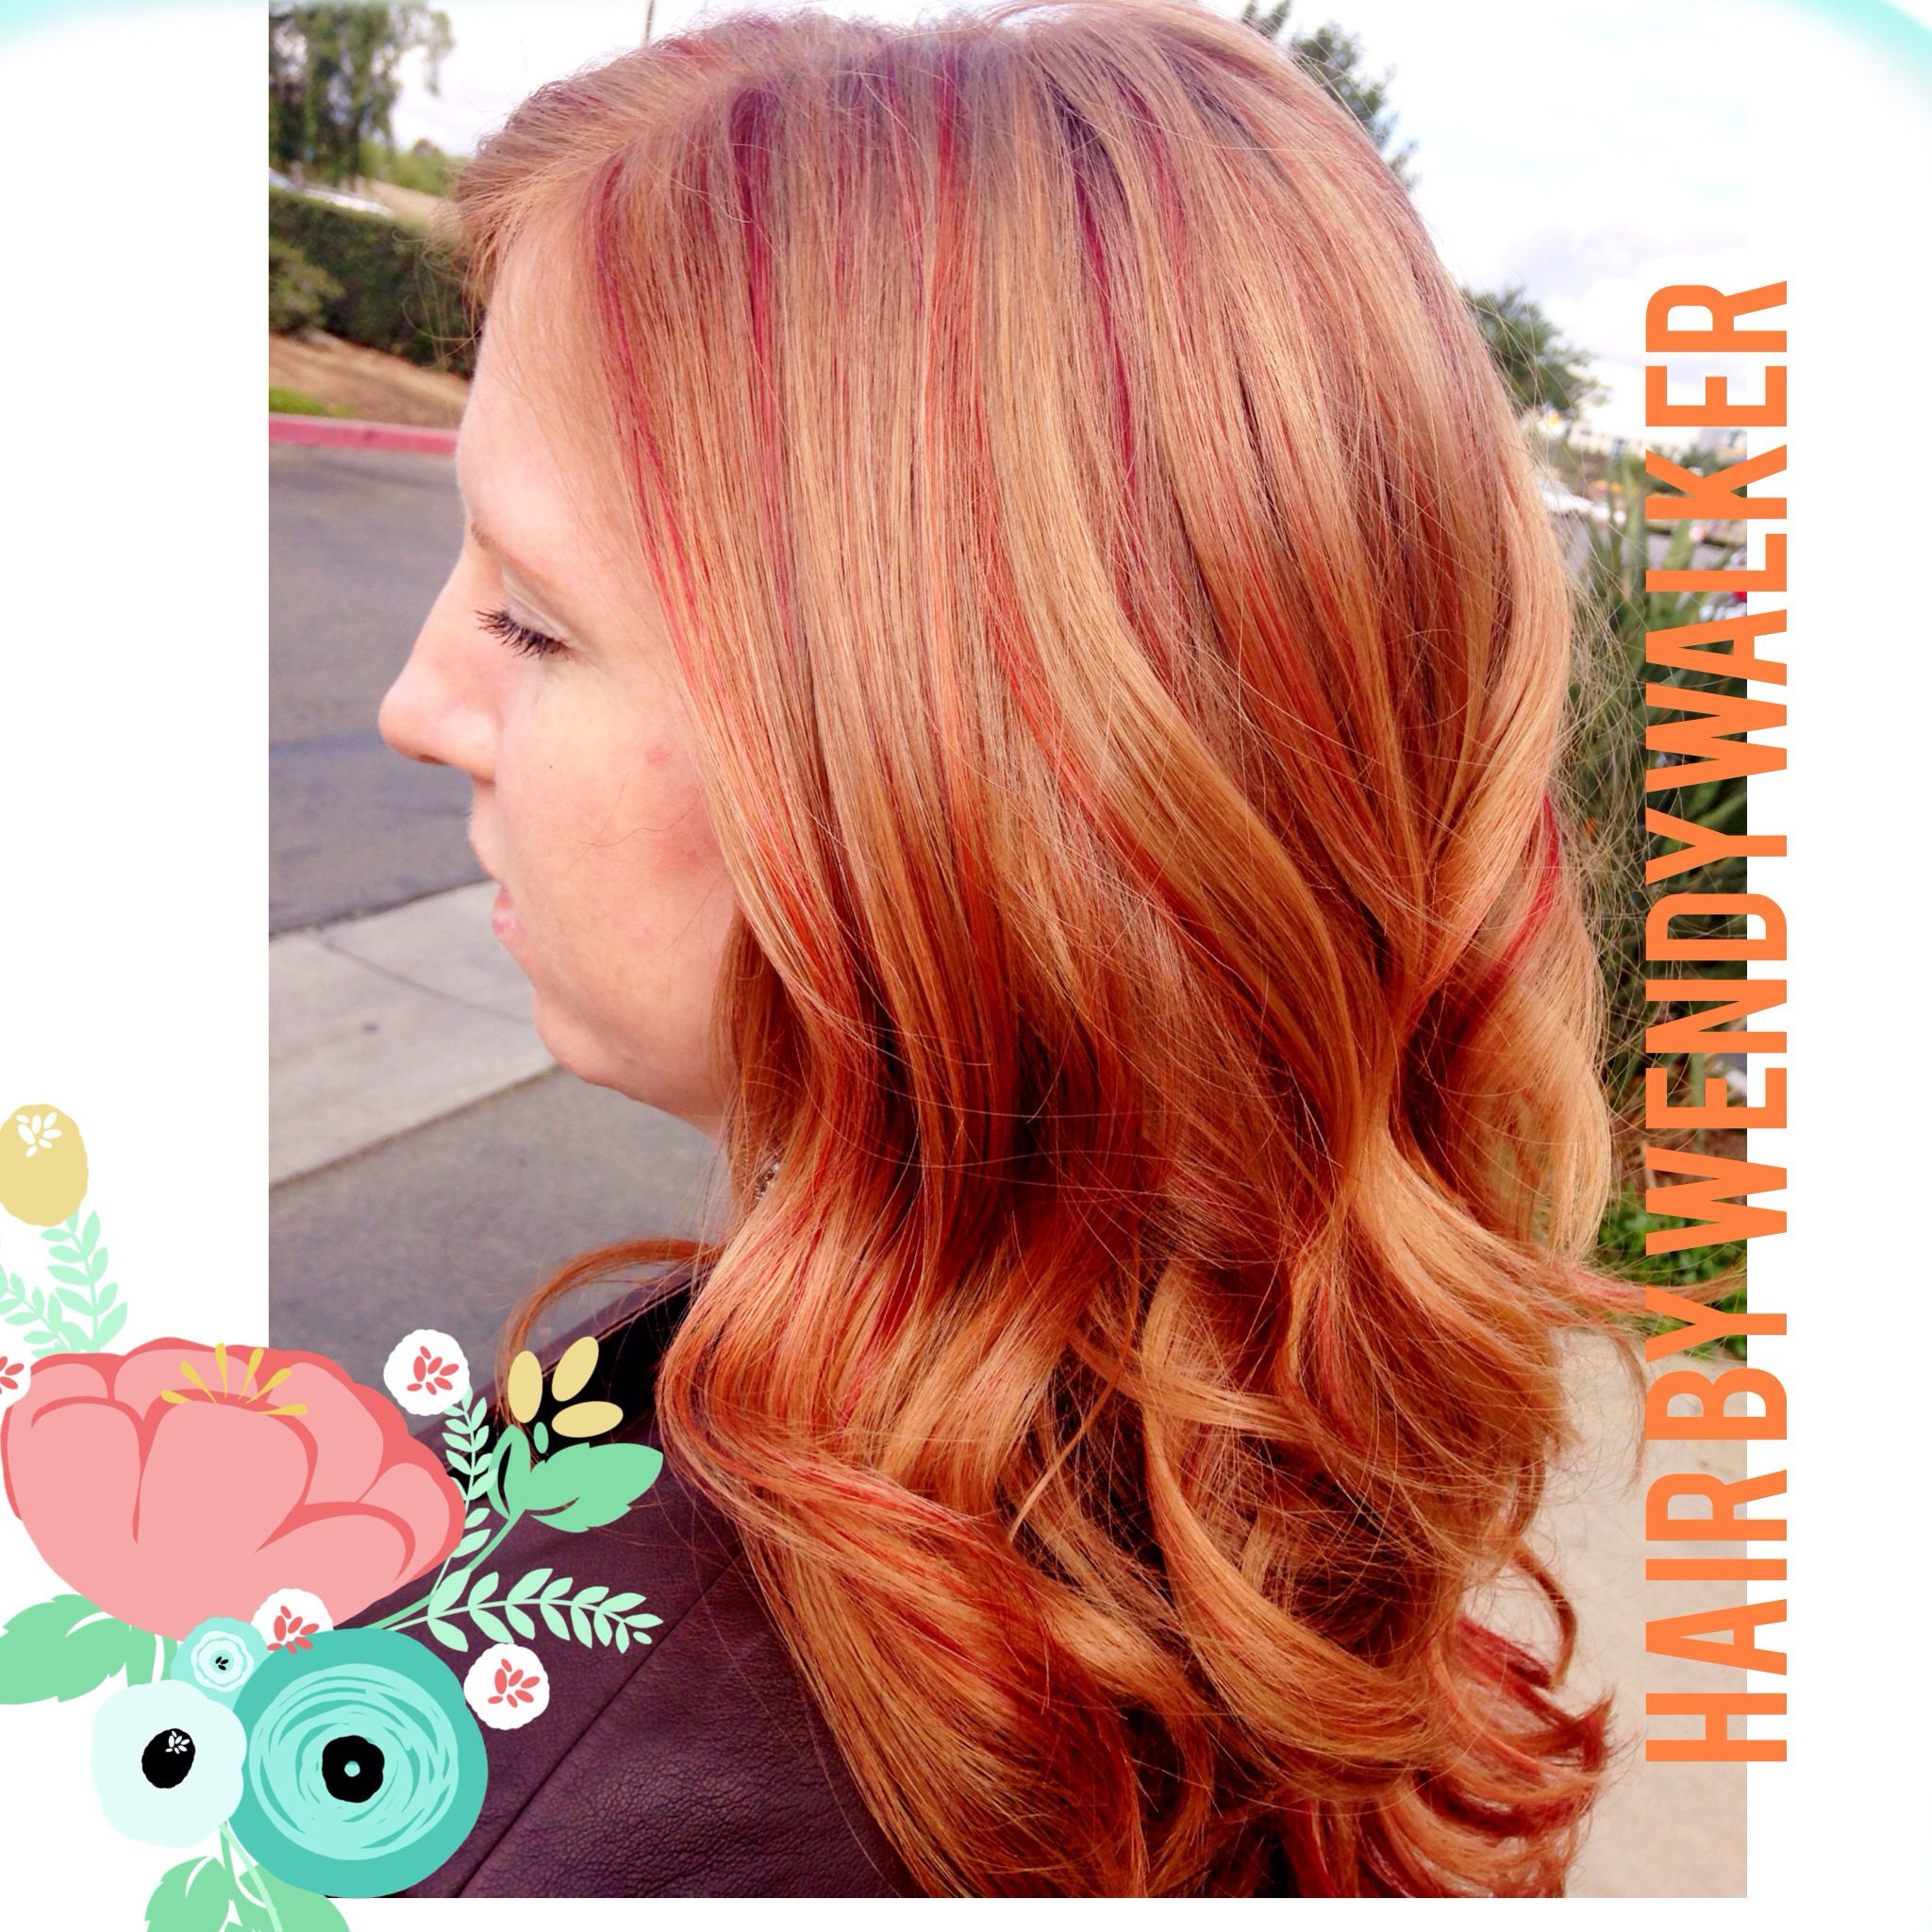 Pin By Wendy Walker On Hair Color Hair Color Spring Hair Color Hair Color Trends